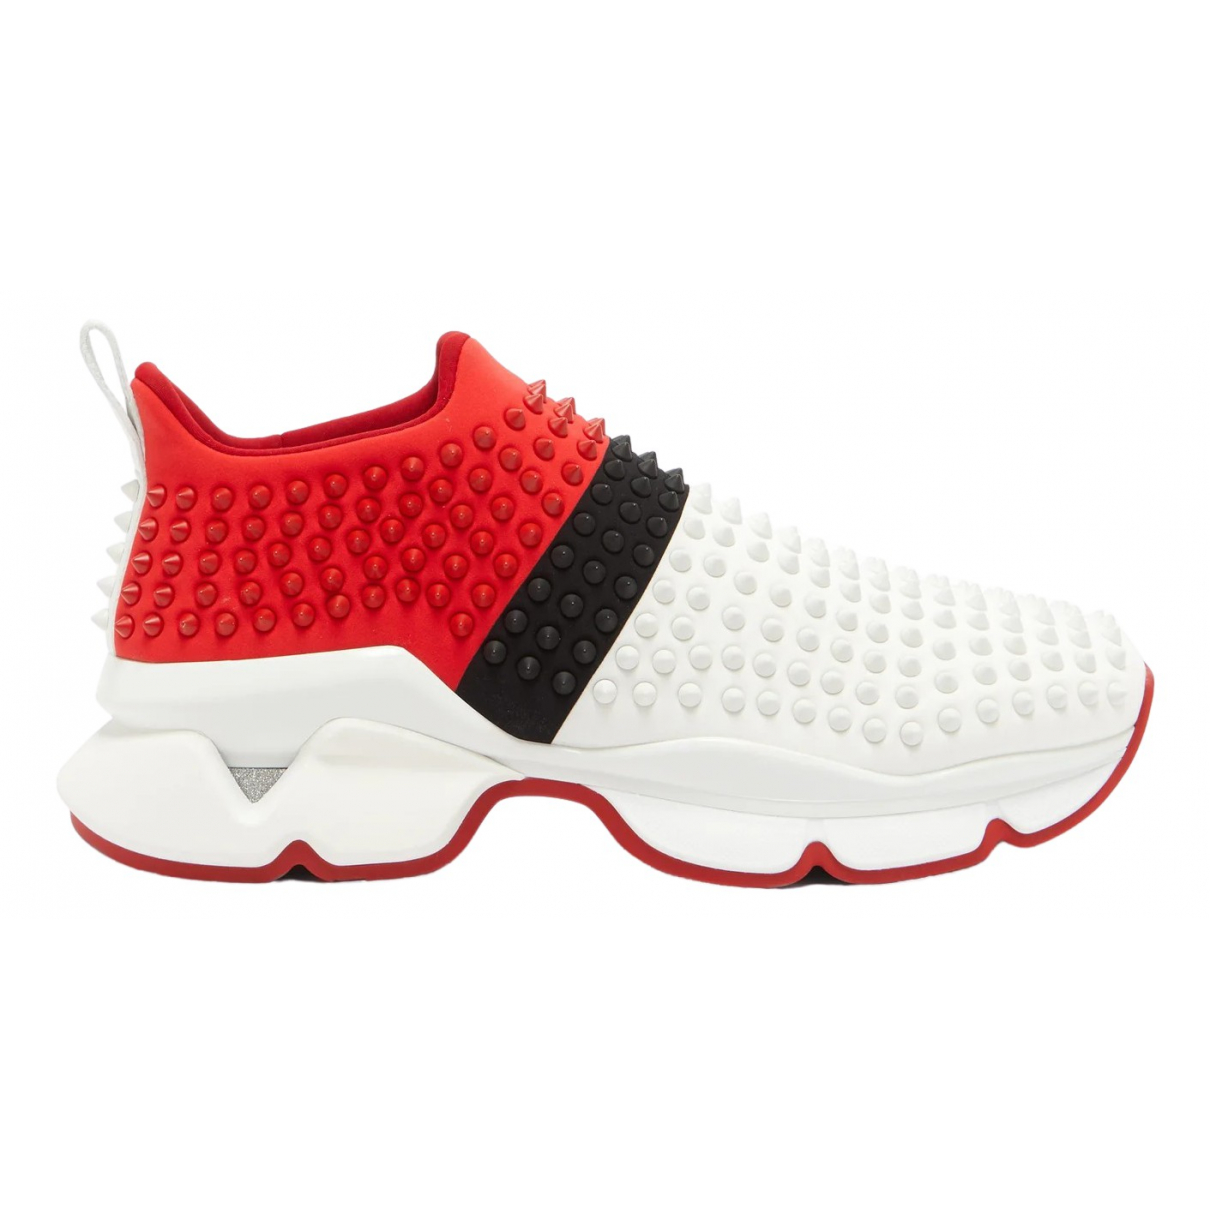 Christian Louboutin Spike Sock Red Leather Trainers for Men 40 EU